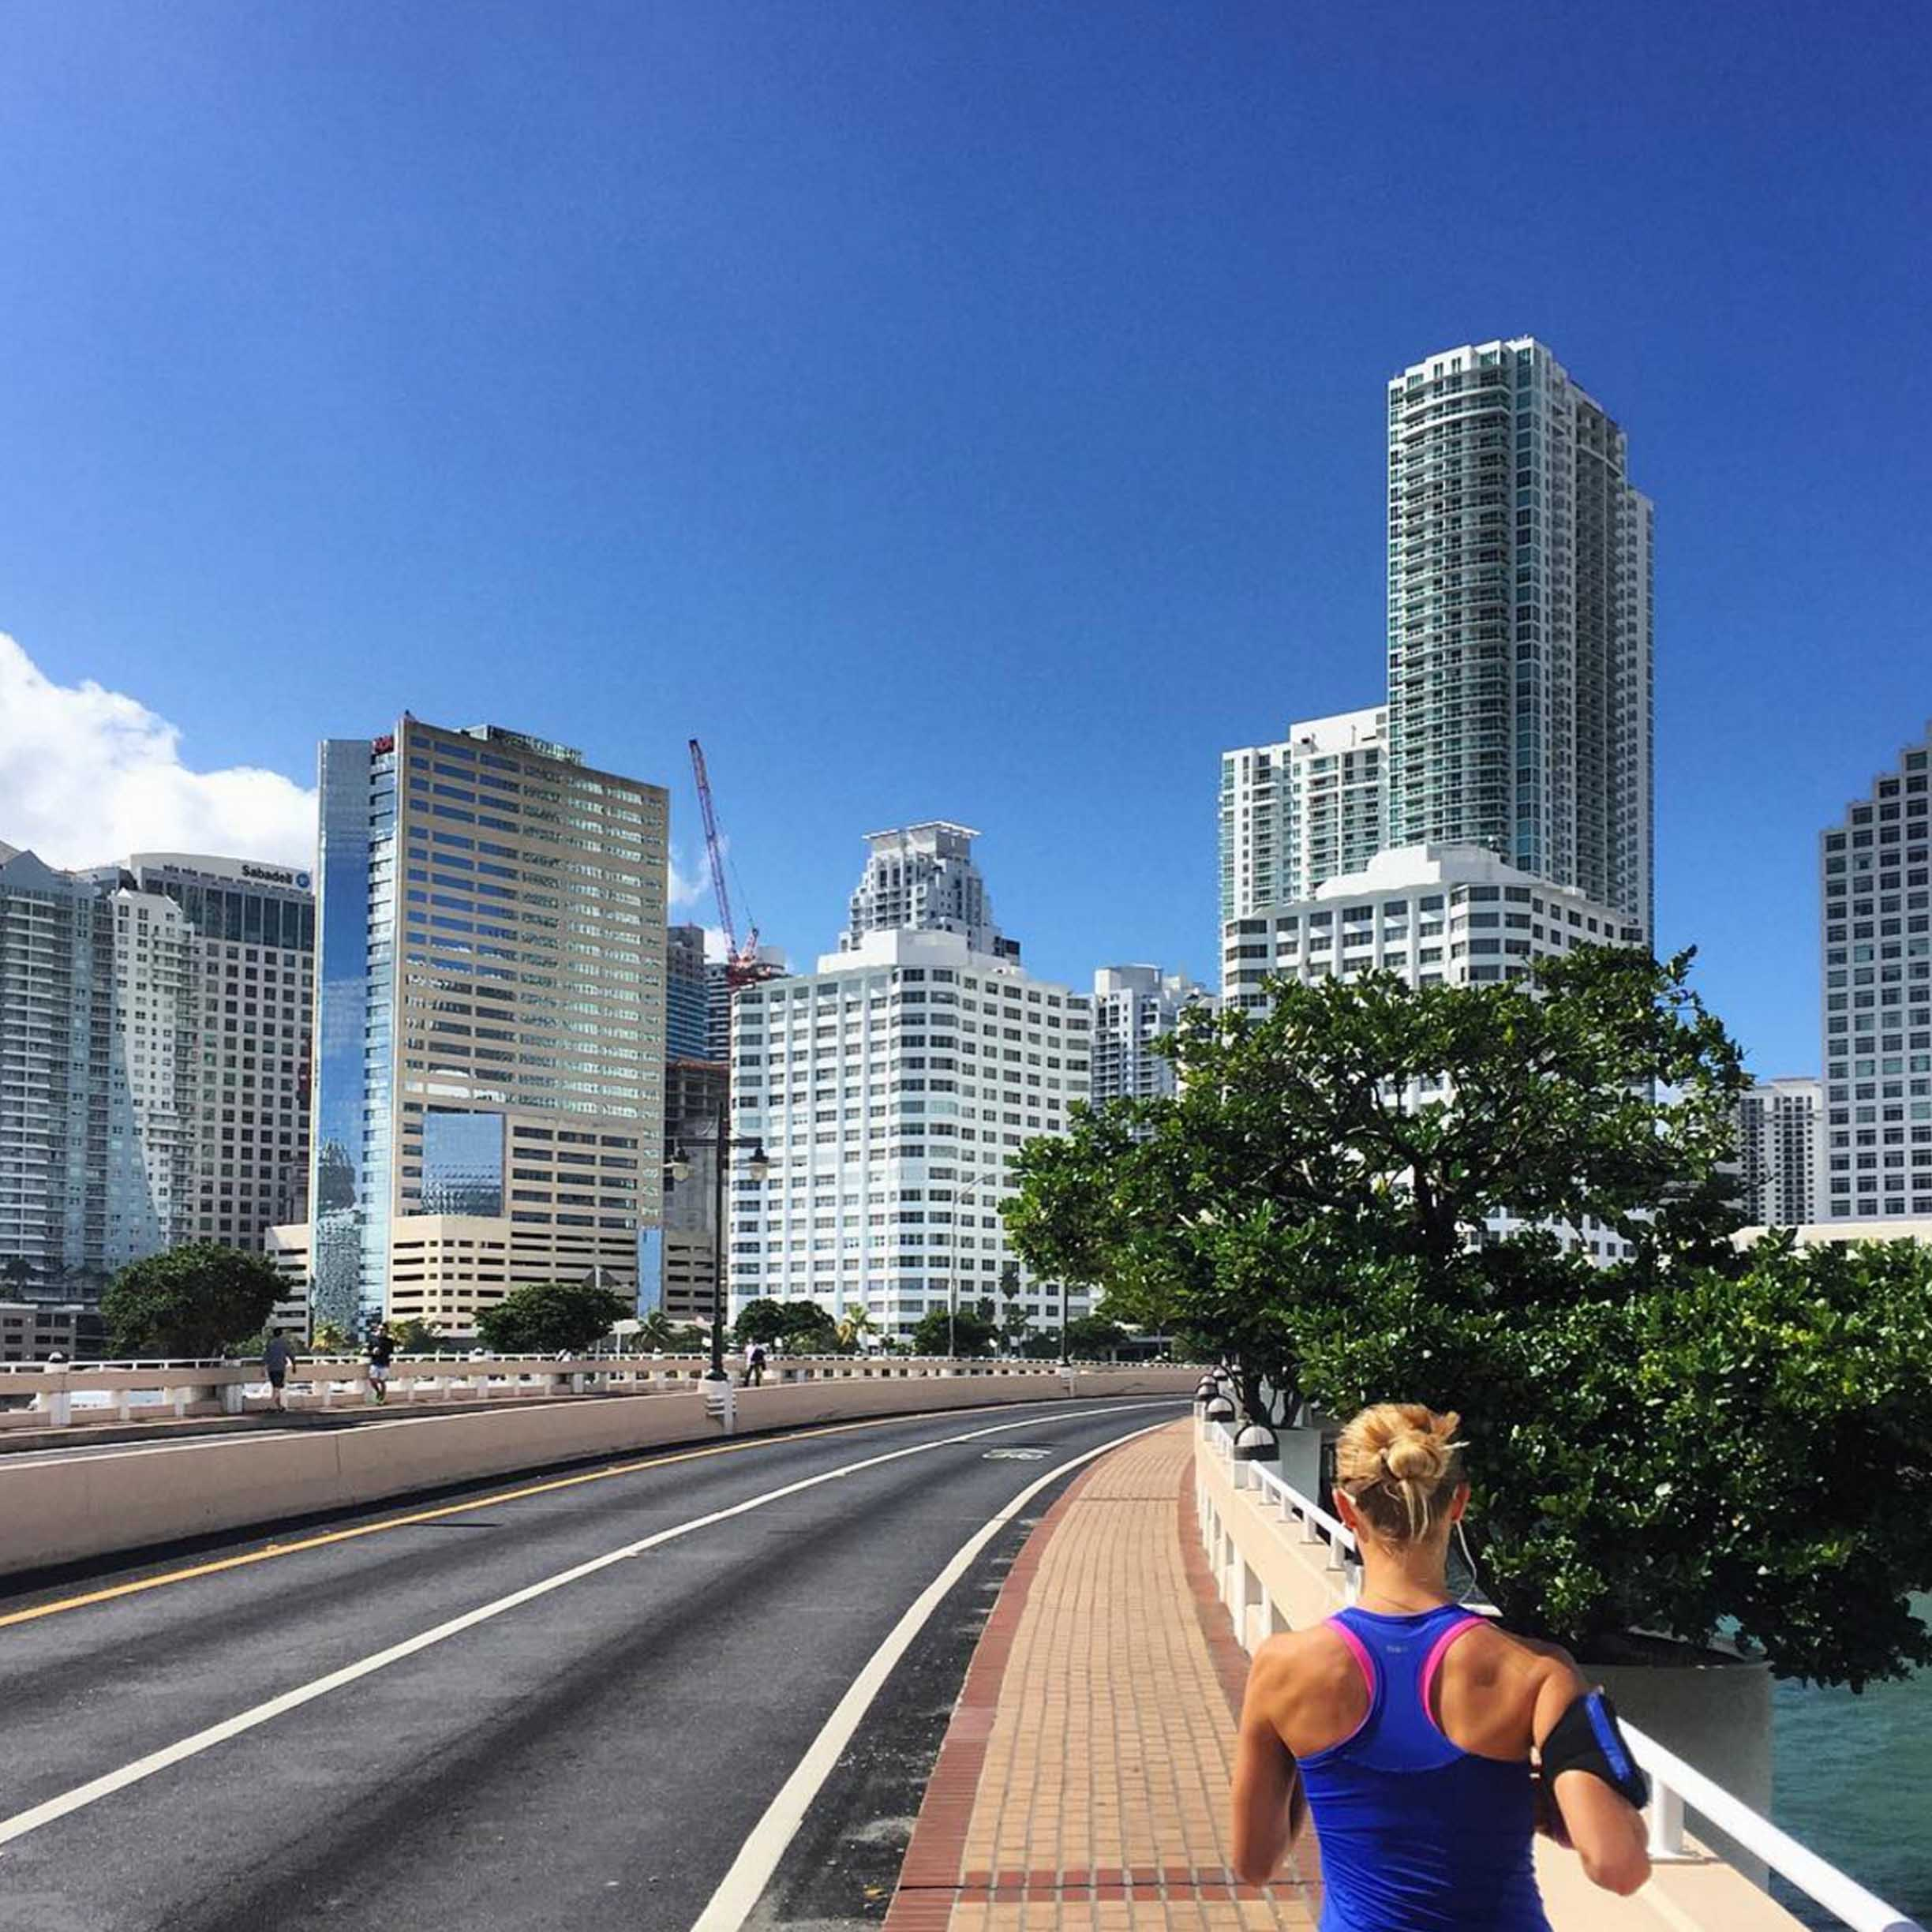 Anna-Maja and I did 18km this morning. Running all the way from Edgewater next to Wynwood down to Coral Gables and through Brickell Key on the way home.